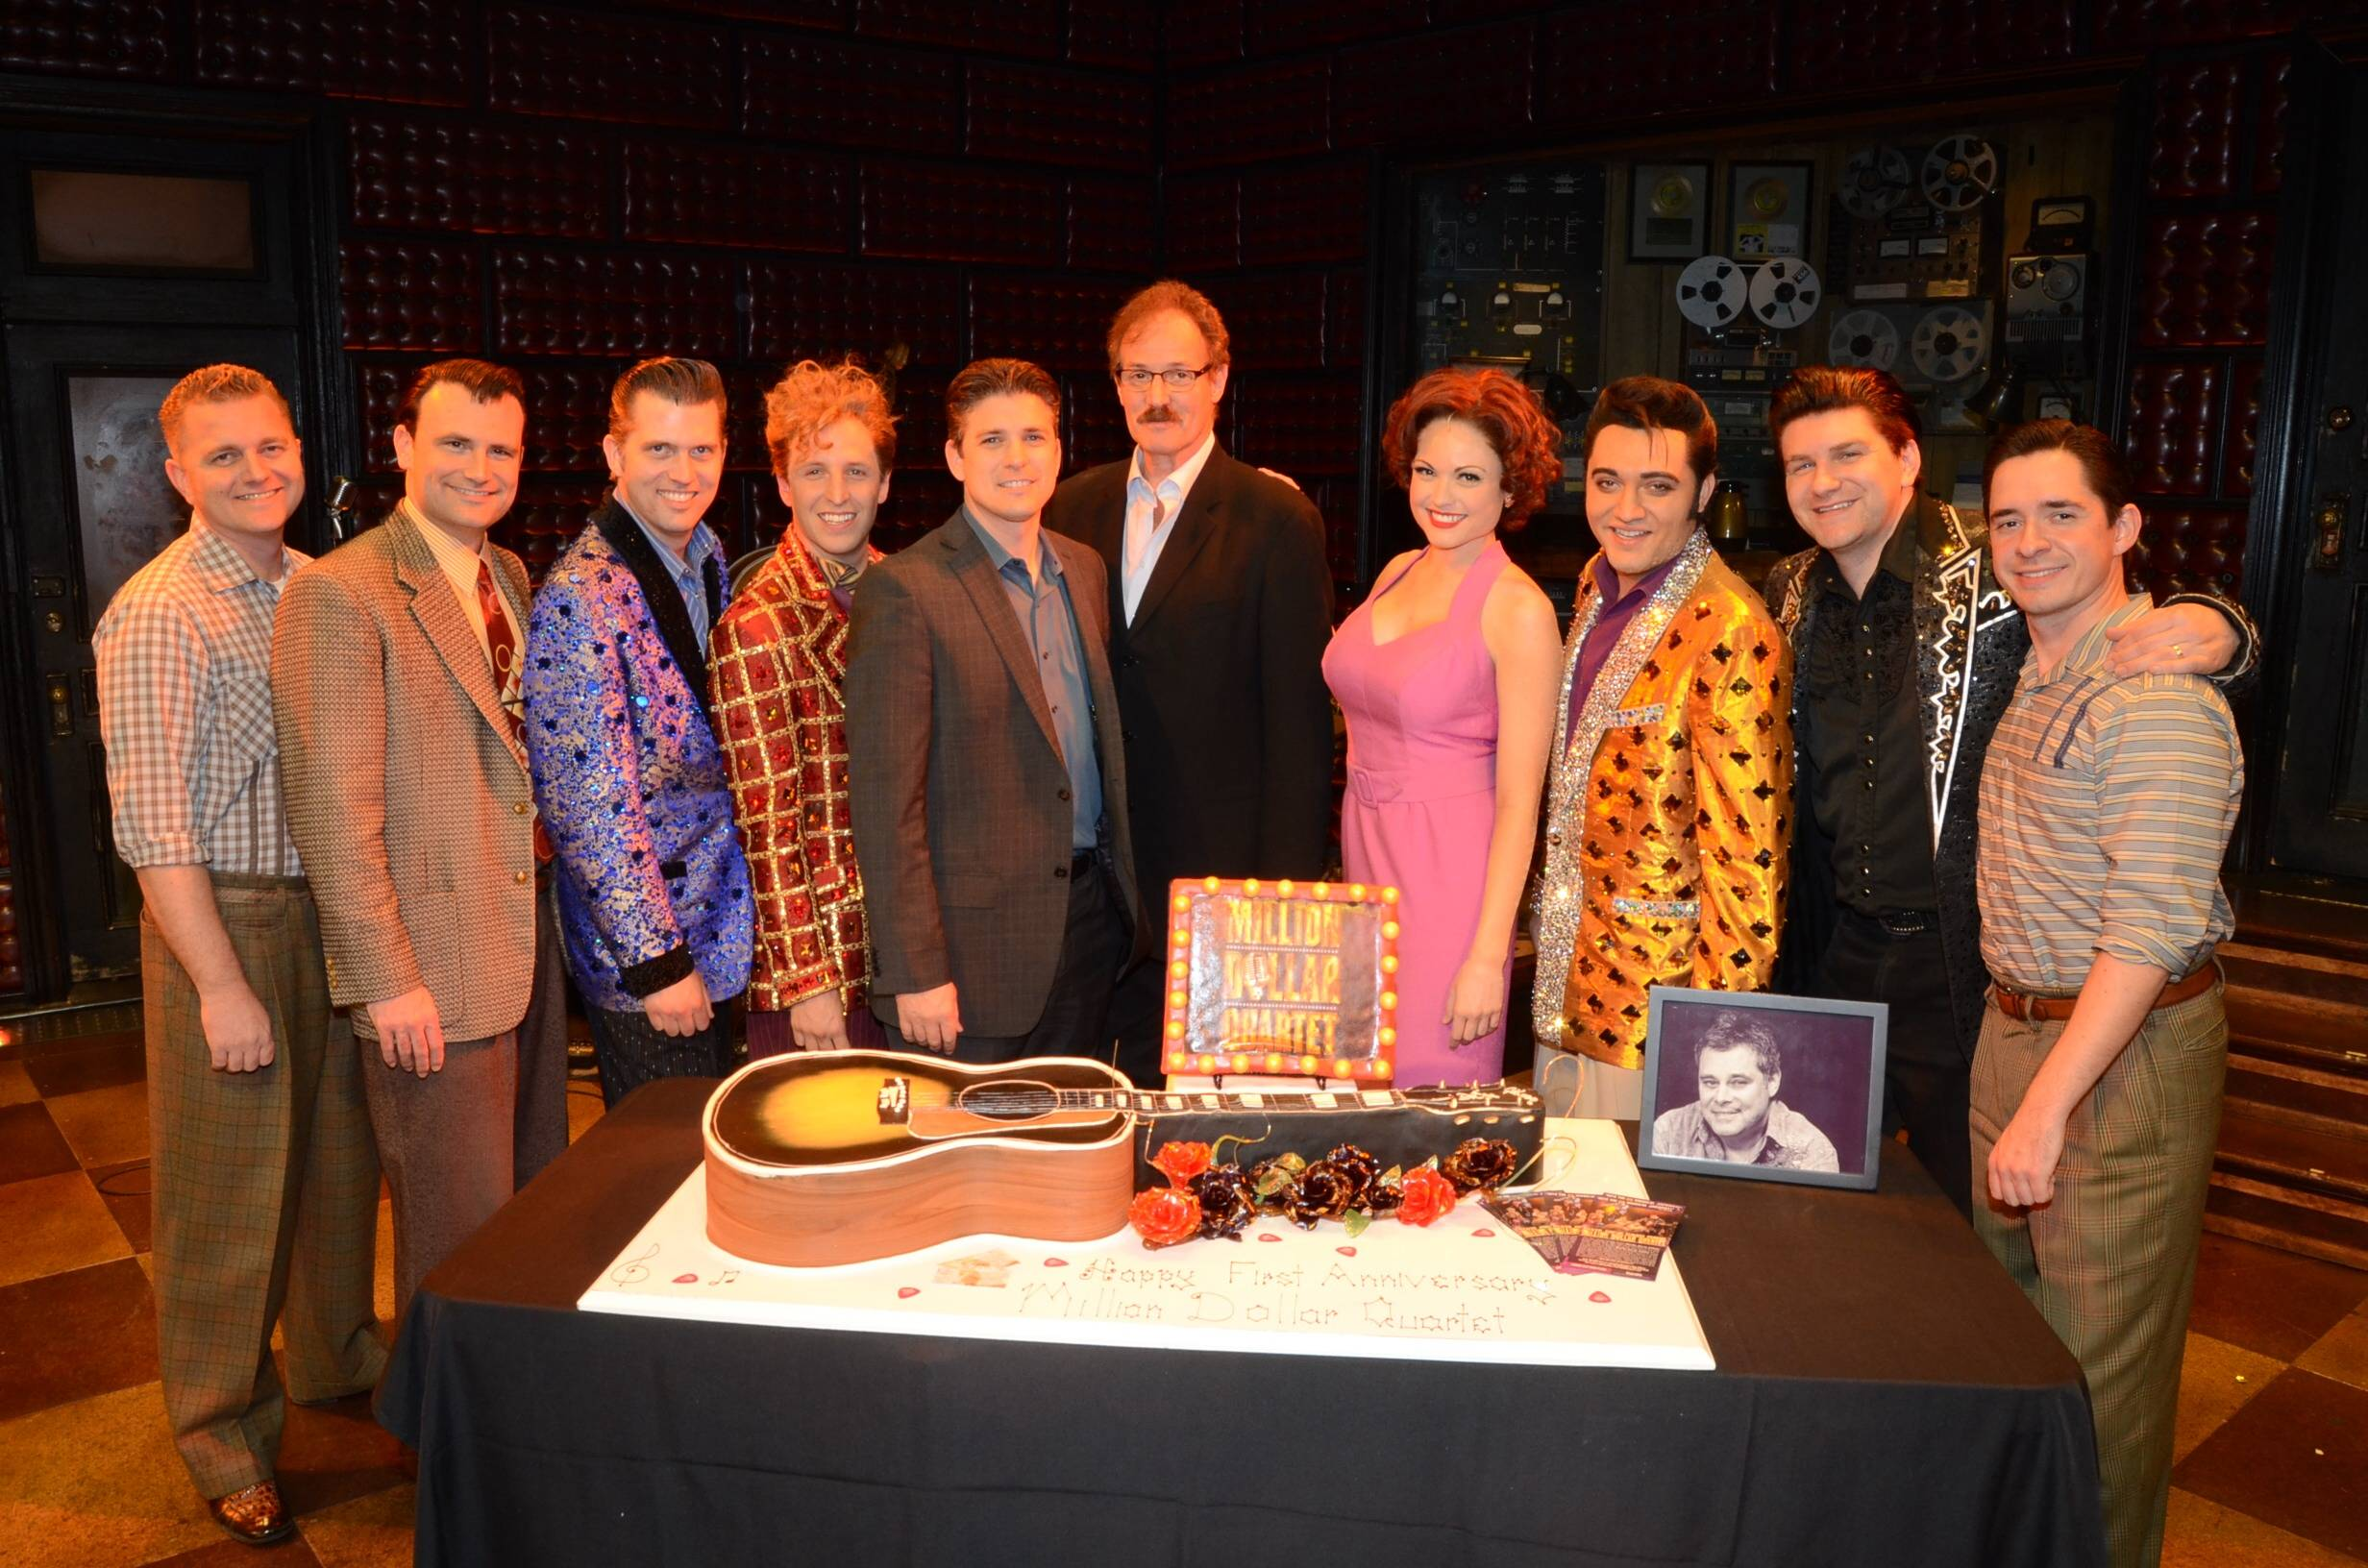 Cast of Million Dollar Quartet Las Vegas with Caesars Entertainment Executive Damian Costa and Ted Rawlins 2; First Anniversary 2.19.14 ©Caesars Entertainment